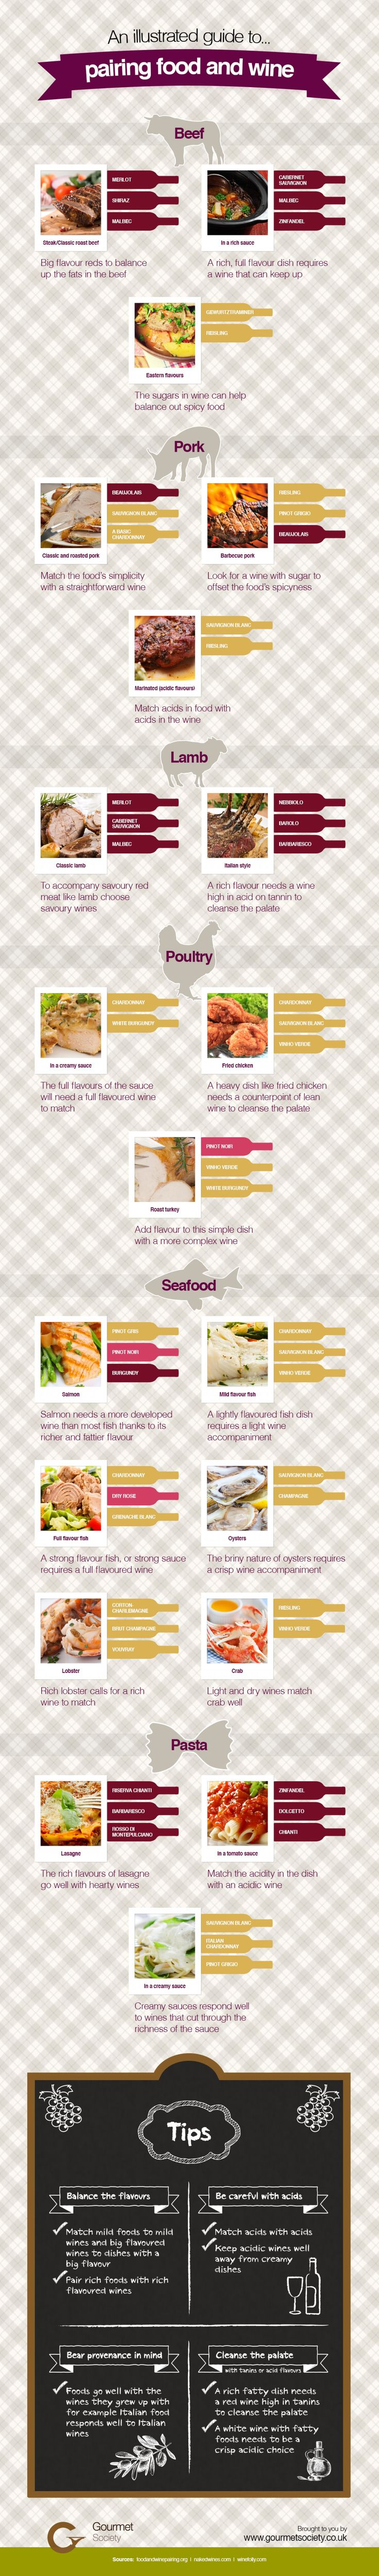 Pairing food and wine Infographic